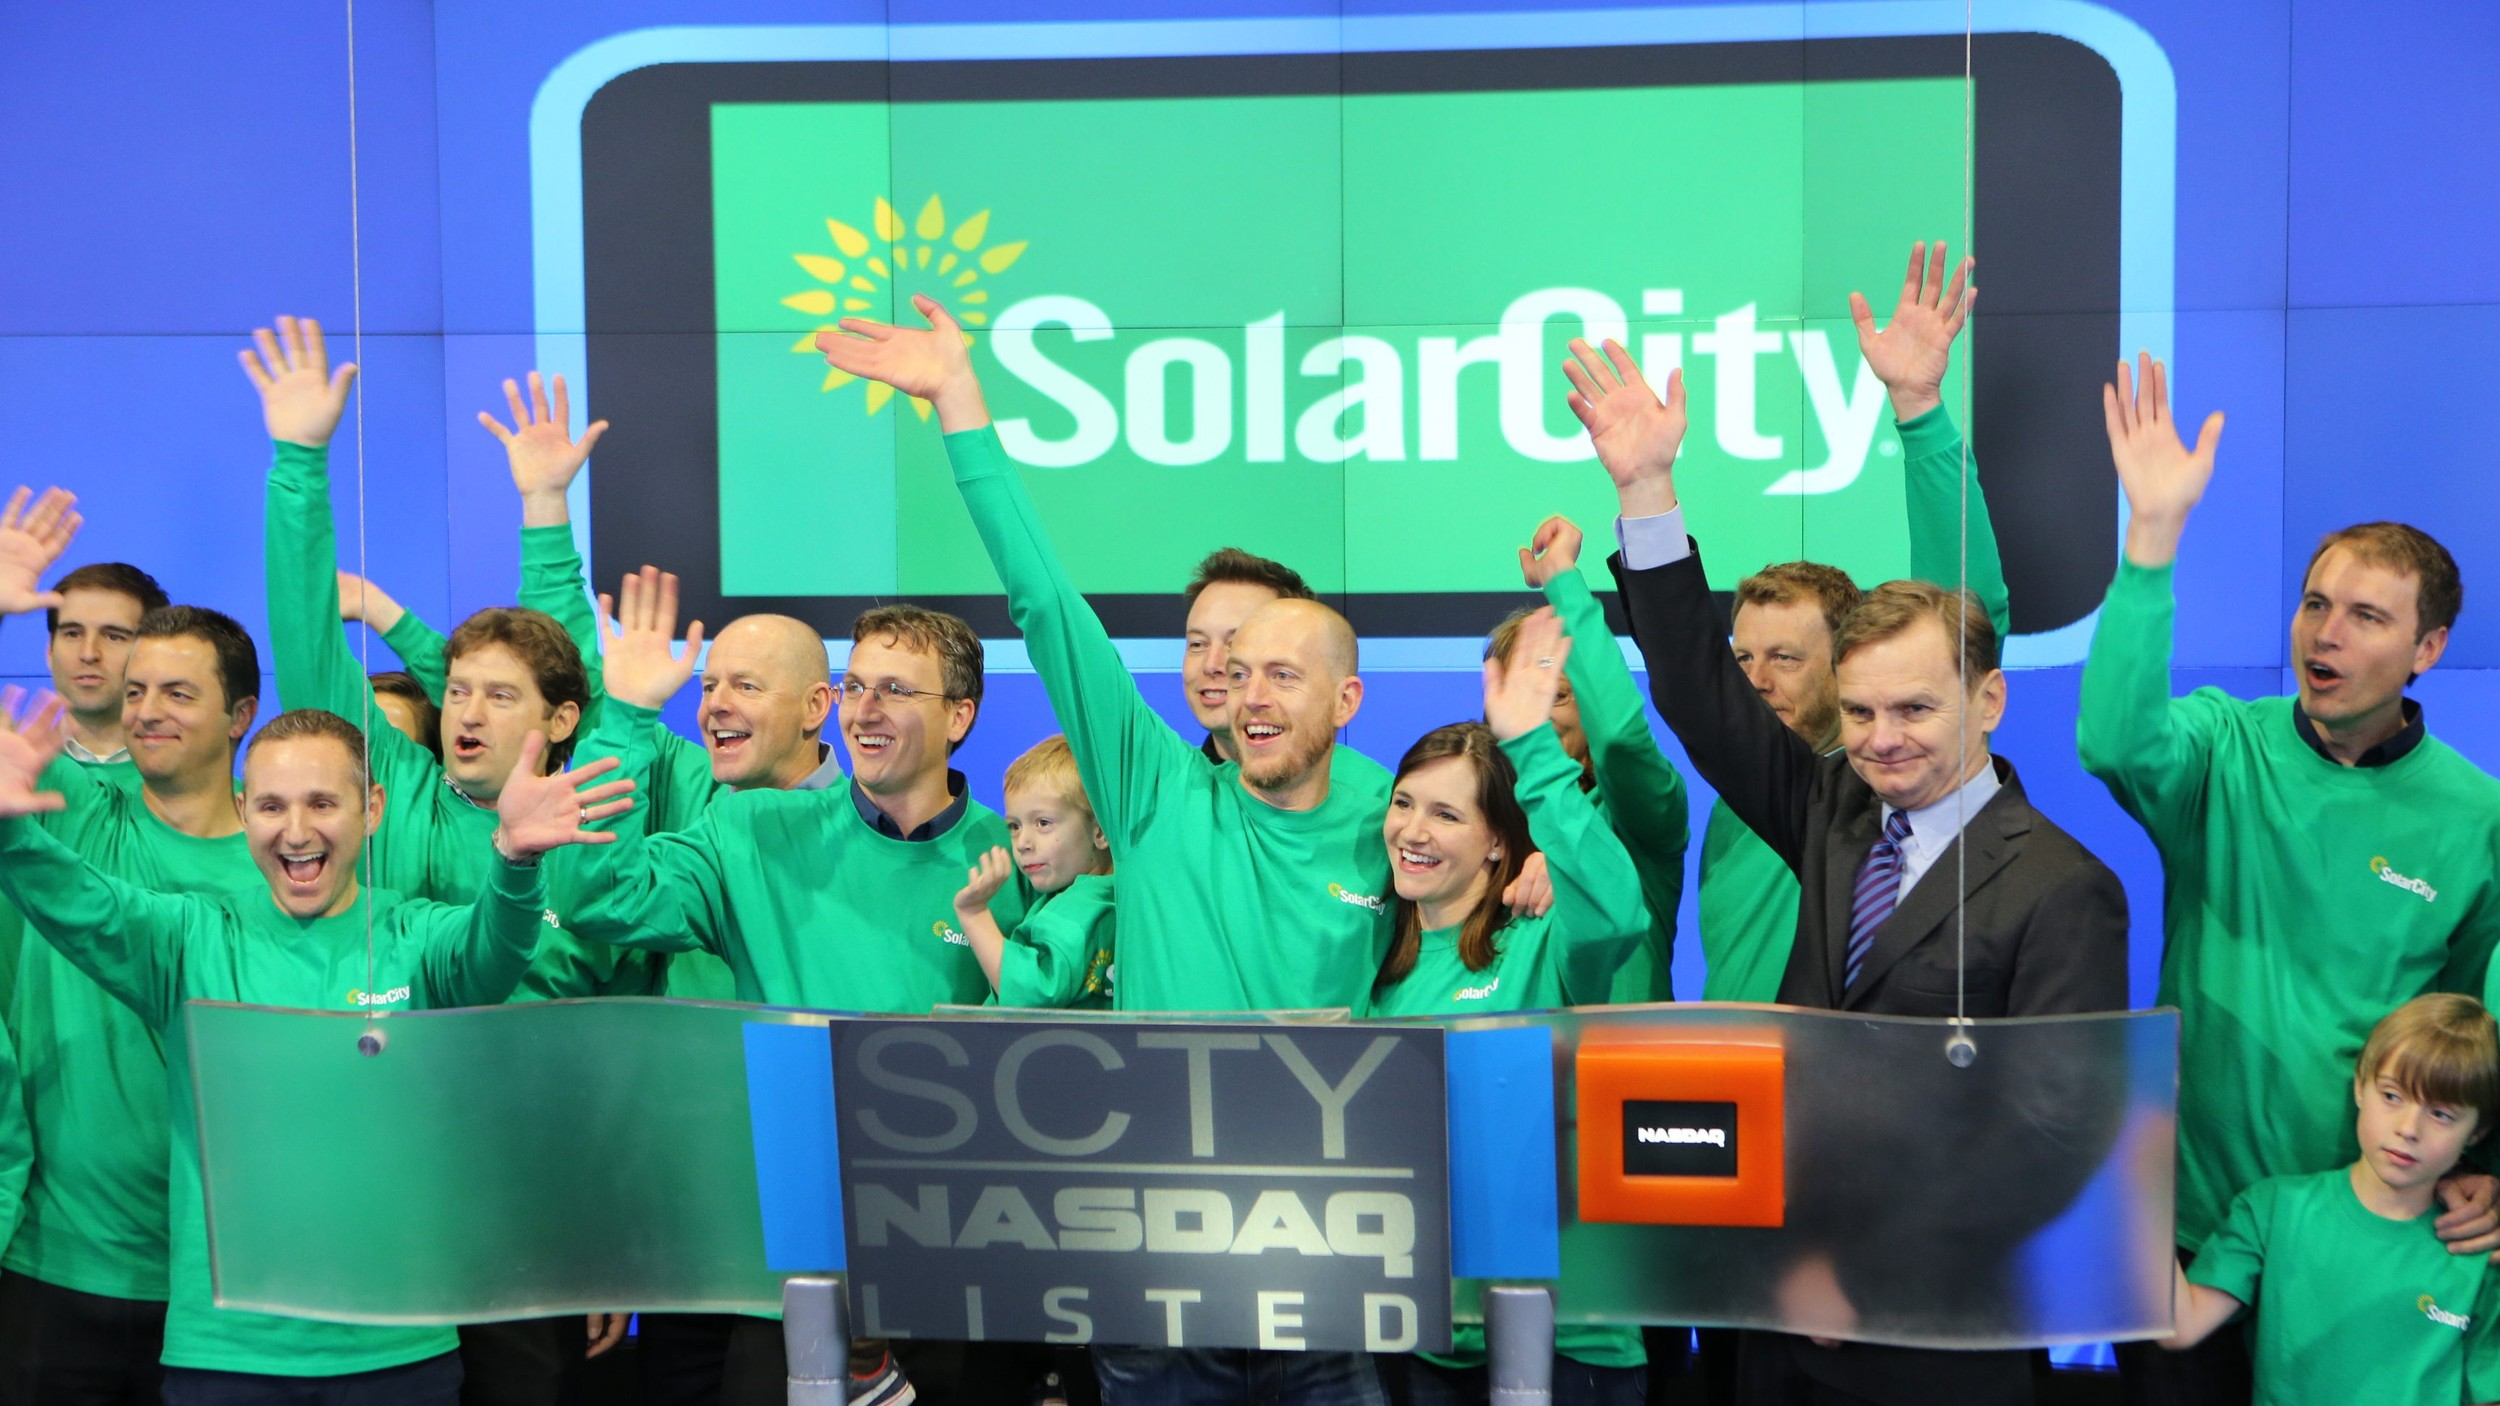 http://blogs-images.forbes.com/briansolomon/files/2014/06/solarcity-e1403037627696.jpg